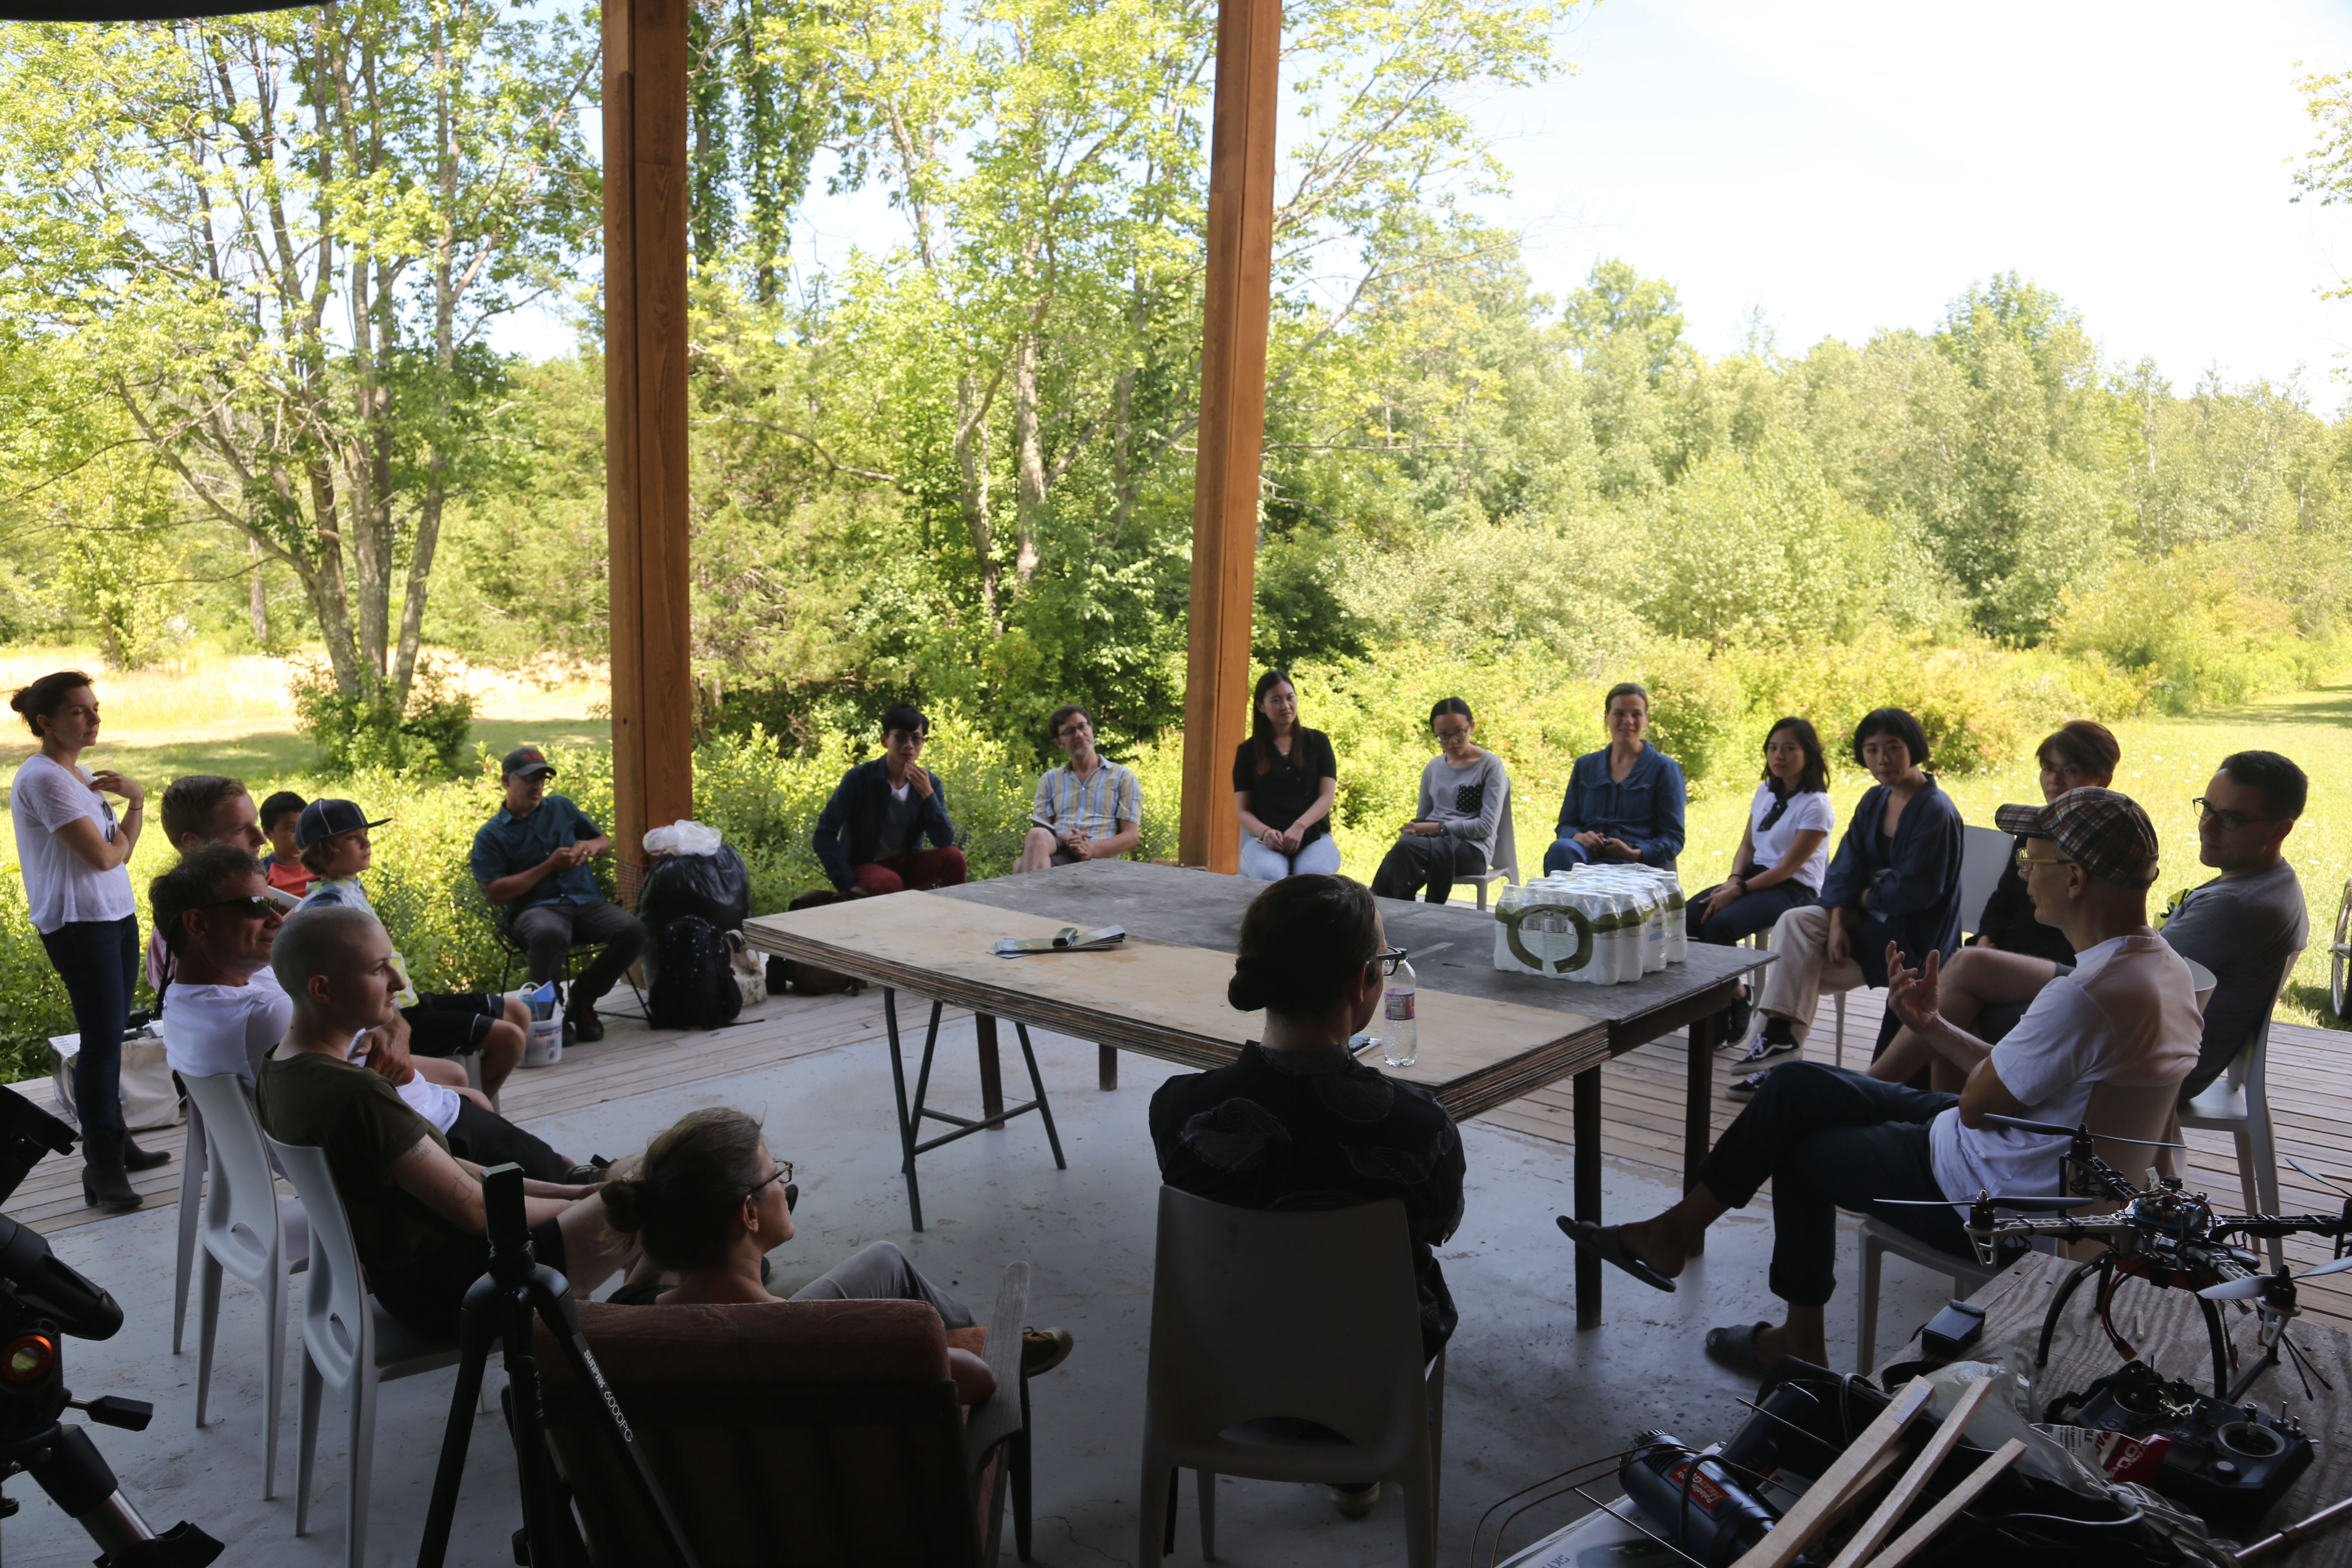 Participants of the Aerial Actor Drone Workshop Gathered on the Wave Farm Study Center Deck